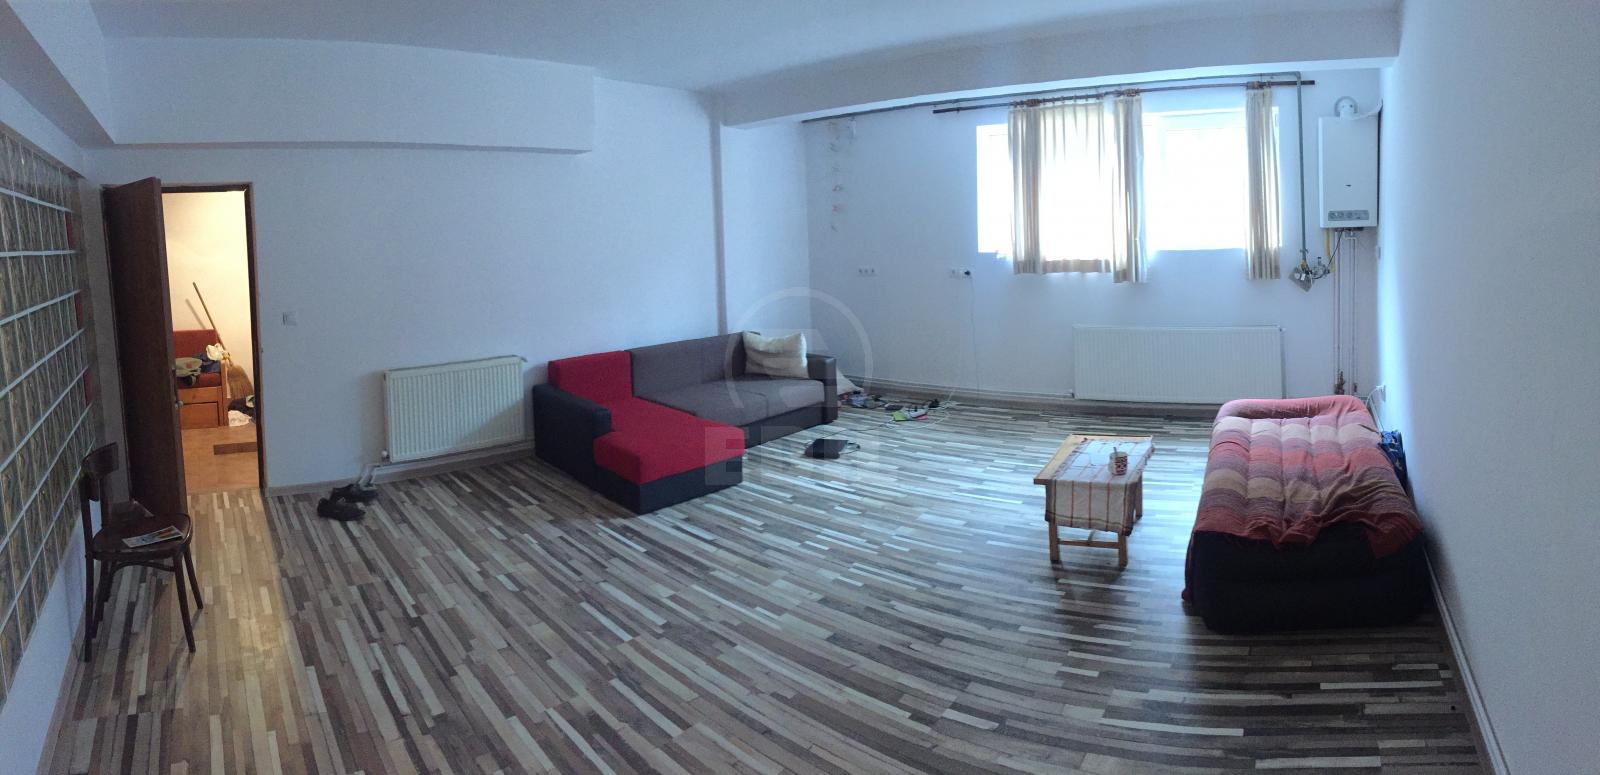 Apartment for sale 2 rooms, APCJ272606-6